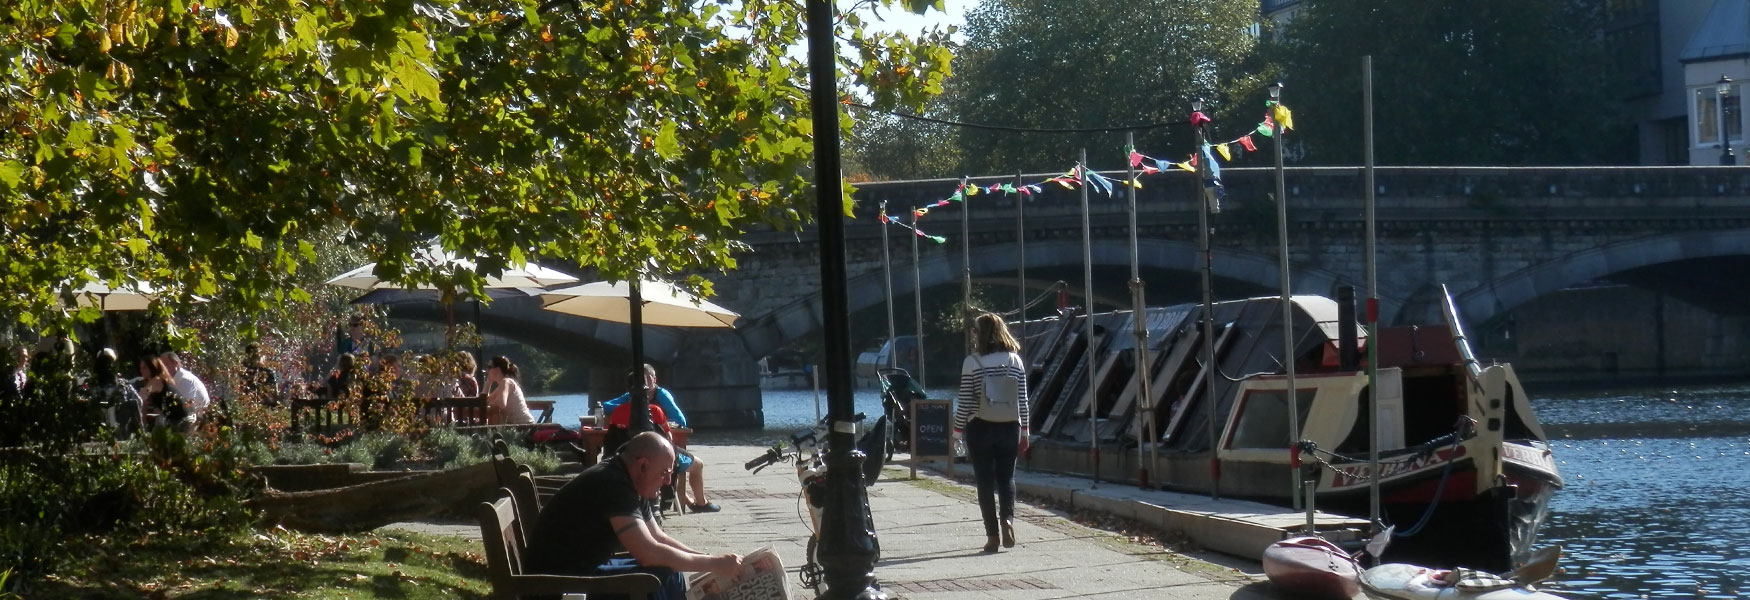 Maidstone River Park and the Old Boat Cafe